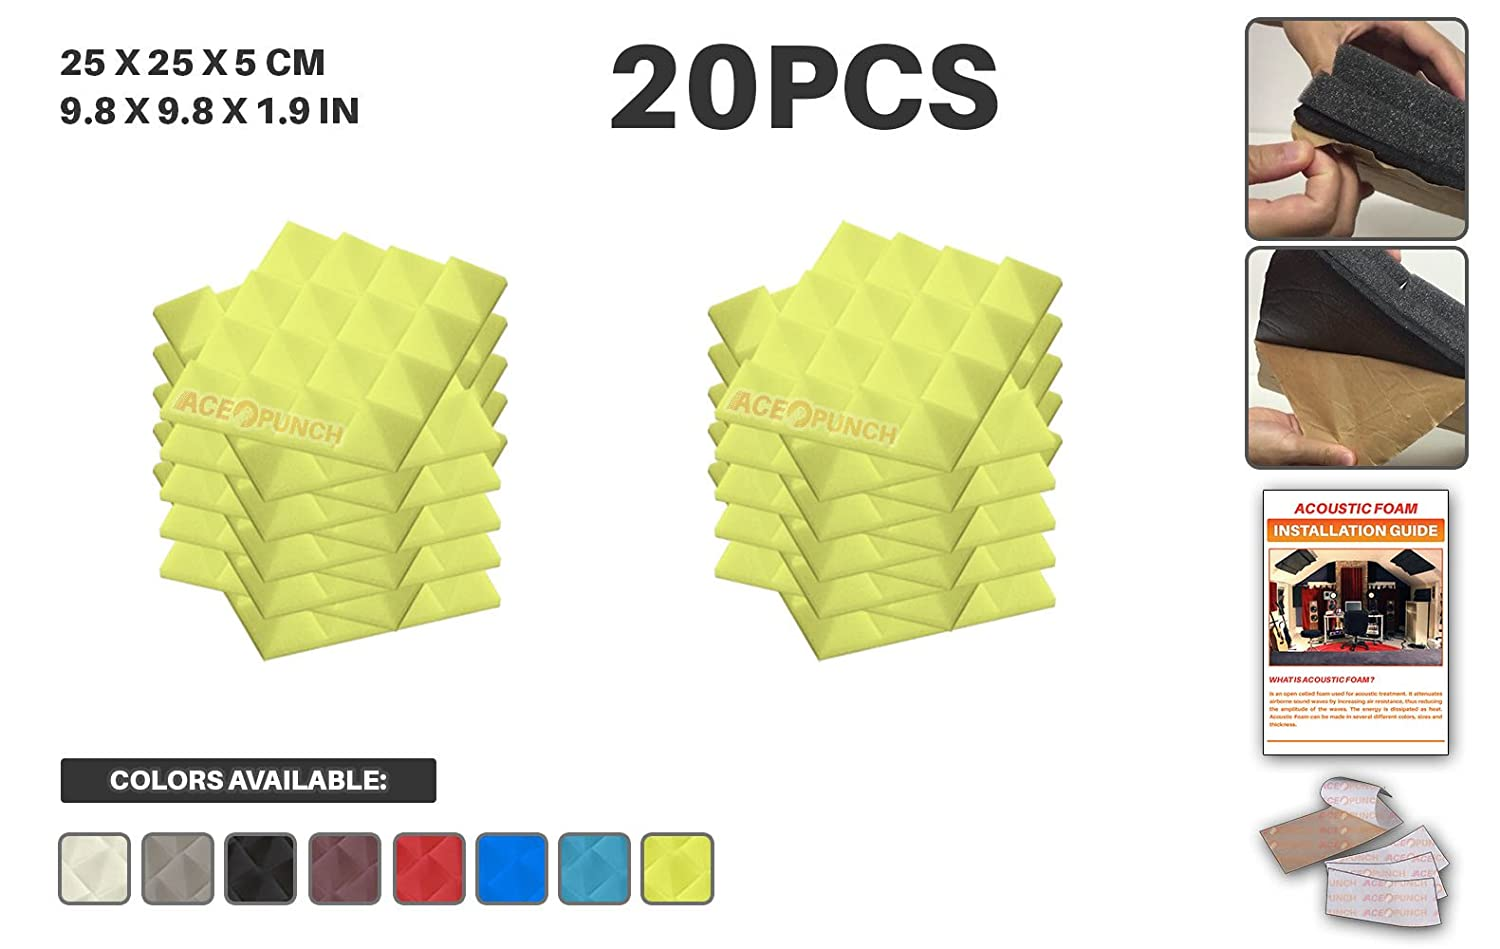 Amazon.com: Ace Punch 20 Pack YELLOW Self Adhesive Pyramid Acoustic ...